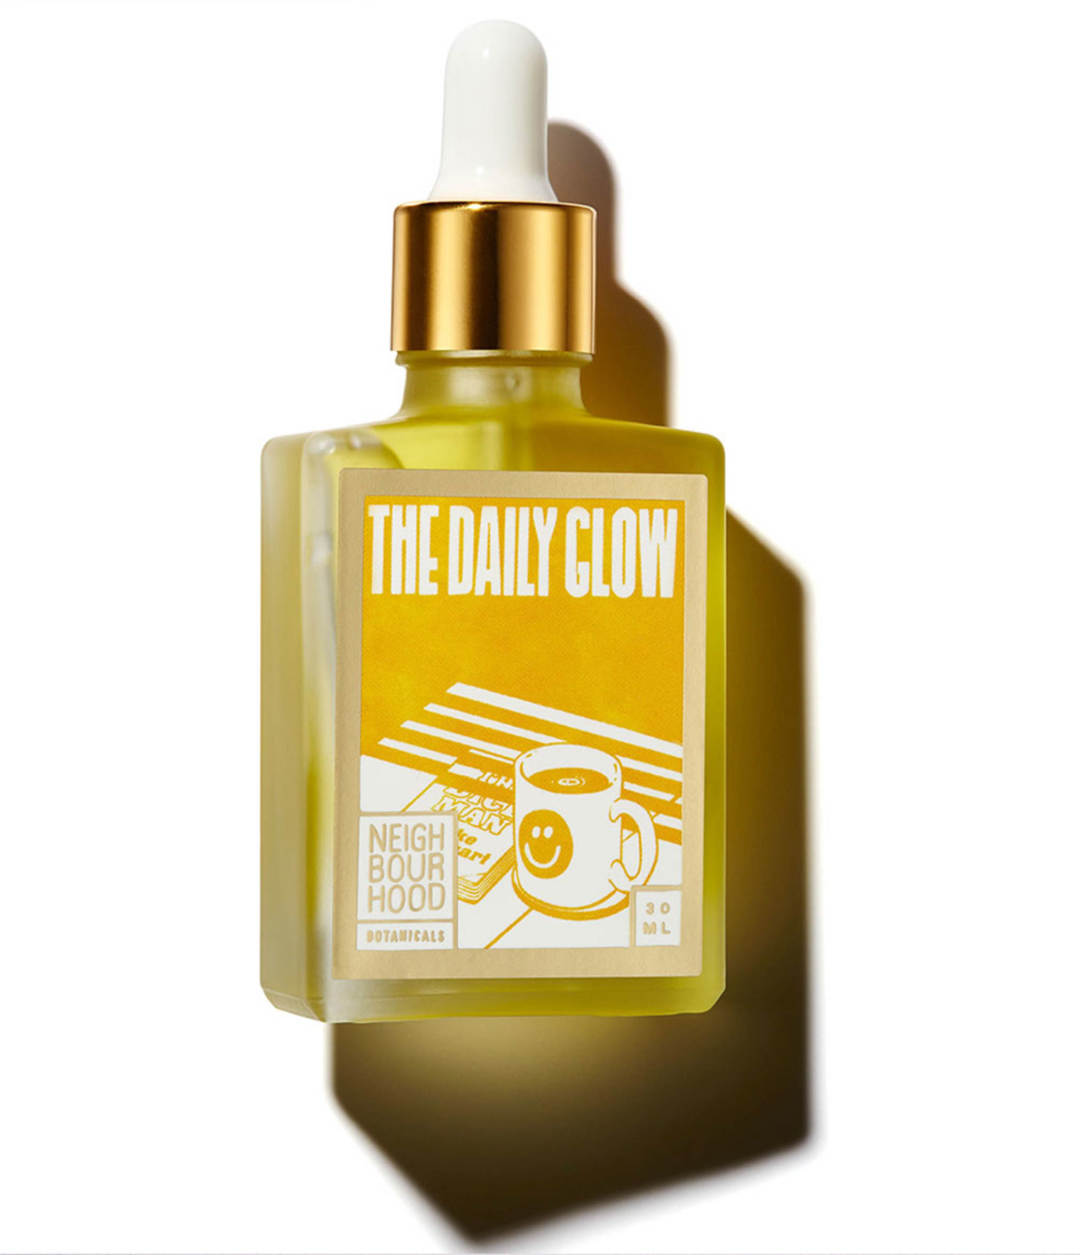 the-daily-glow--neighbourhood-botanicals